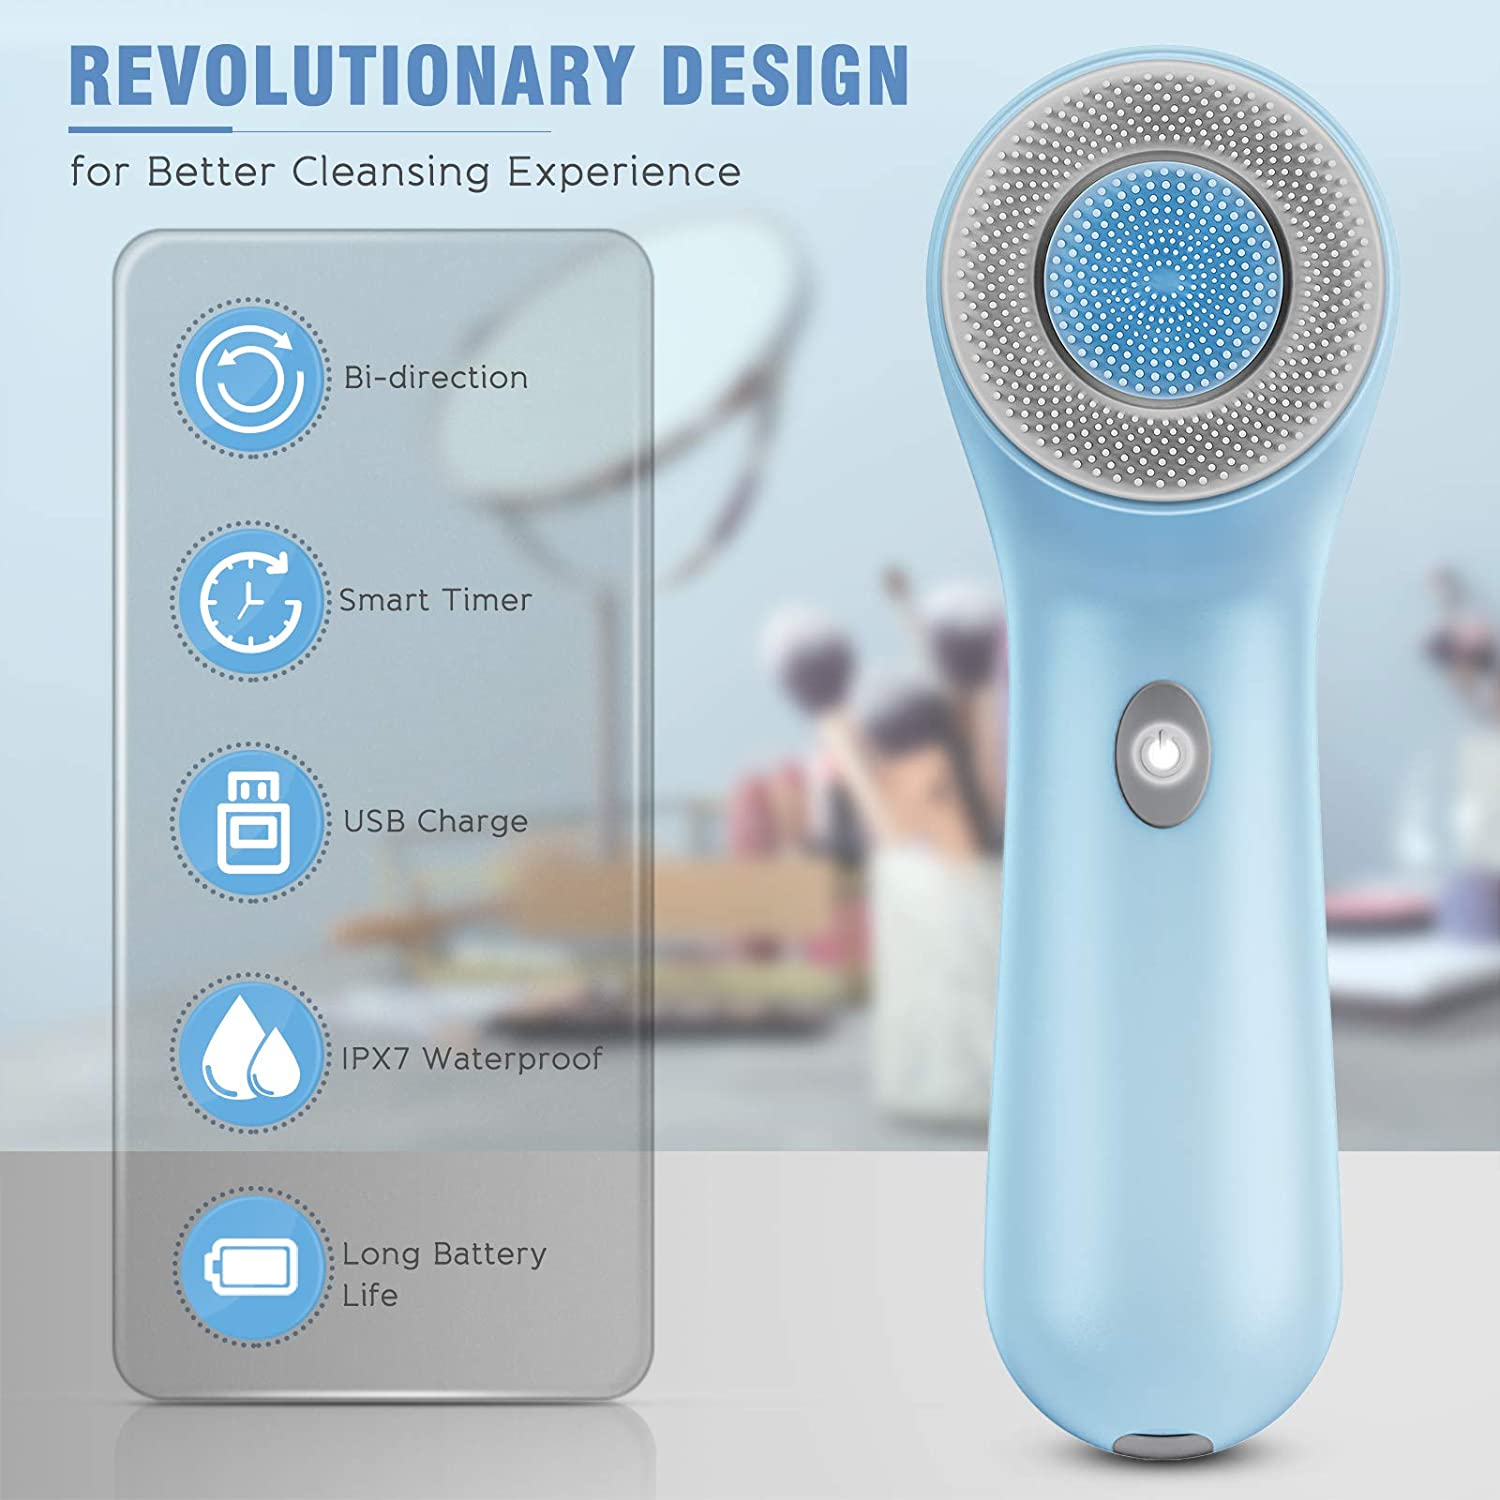 Facial Cleansing Brush, Rechargeable Face Brush Waterproof Electric Spin Face Scrub Brush with USB Charge (Blue)